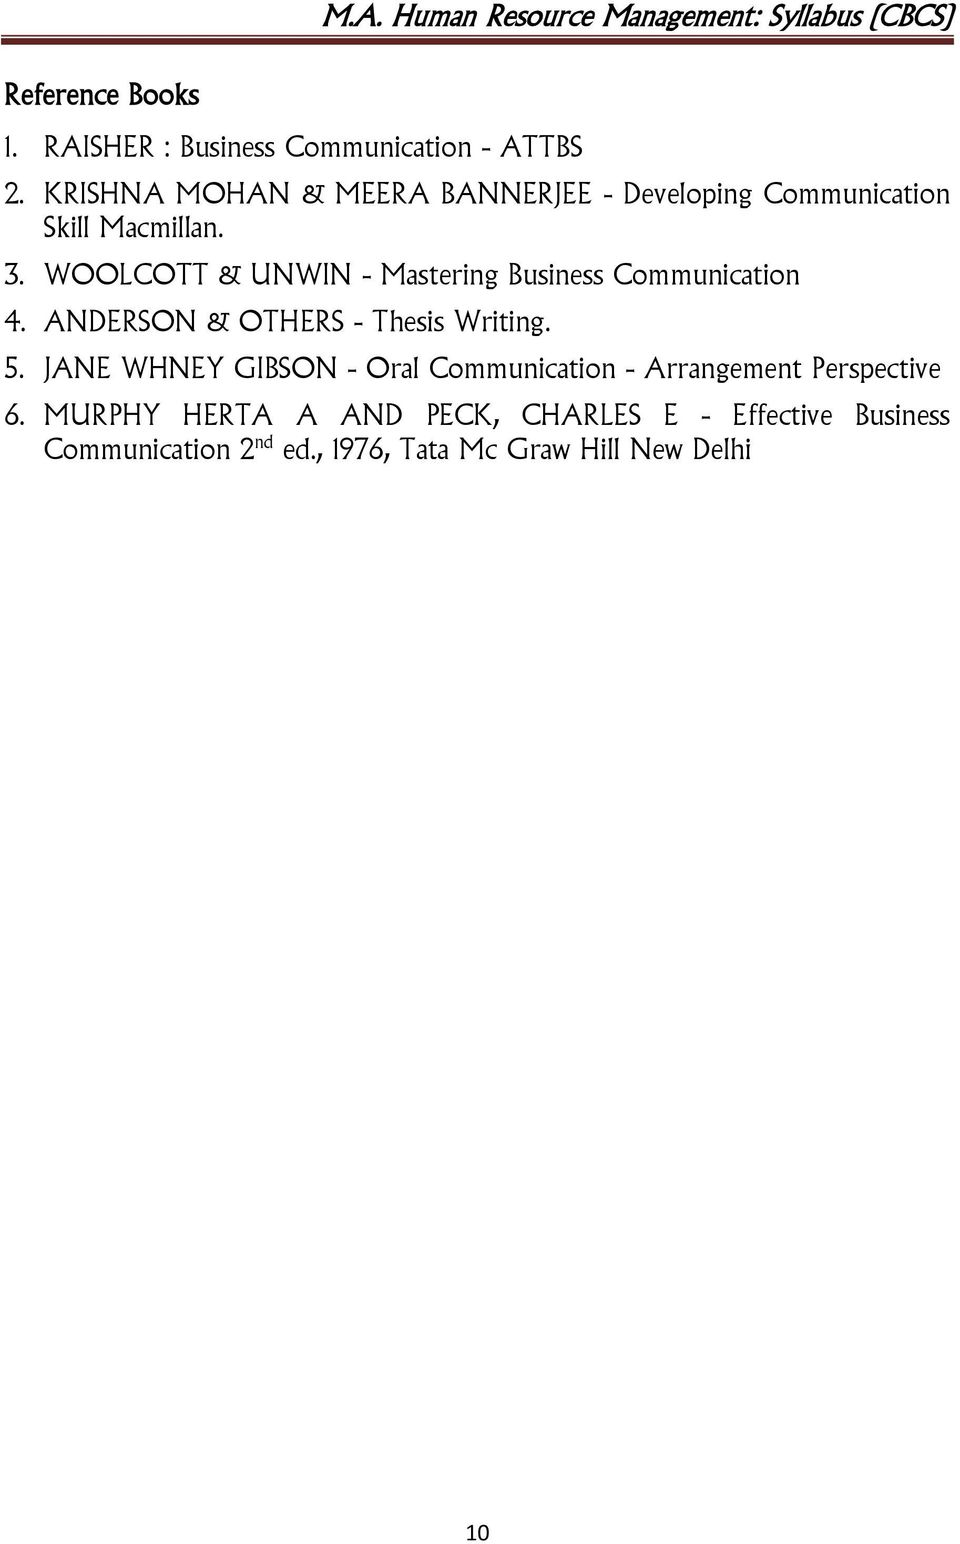 WOOLCOTT & UNWIN - Mastering Business Communication 4. ANDERSON & OTHERS - Thesis Writing. 5.